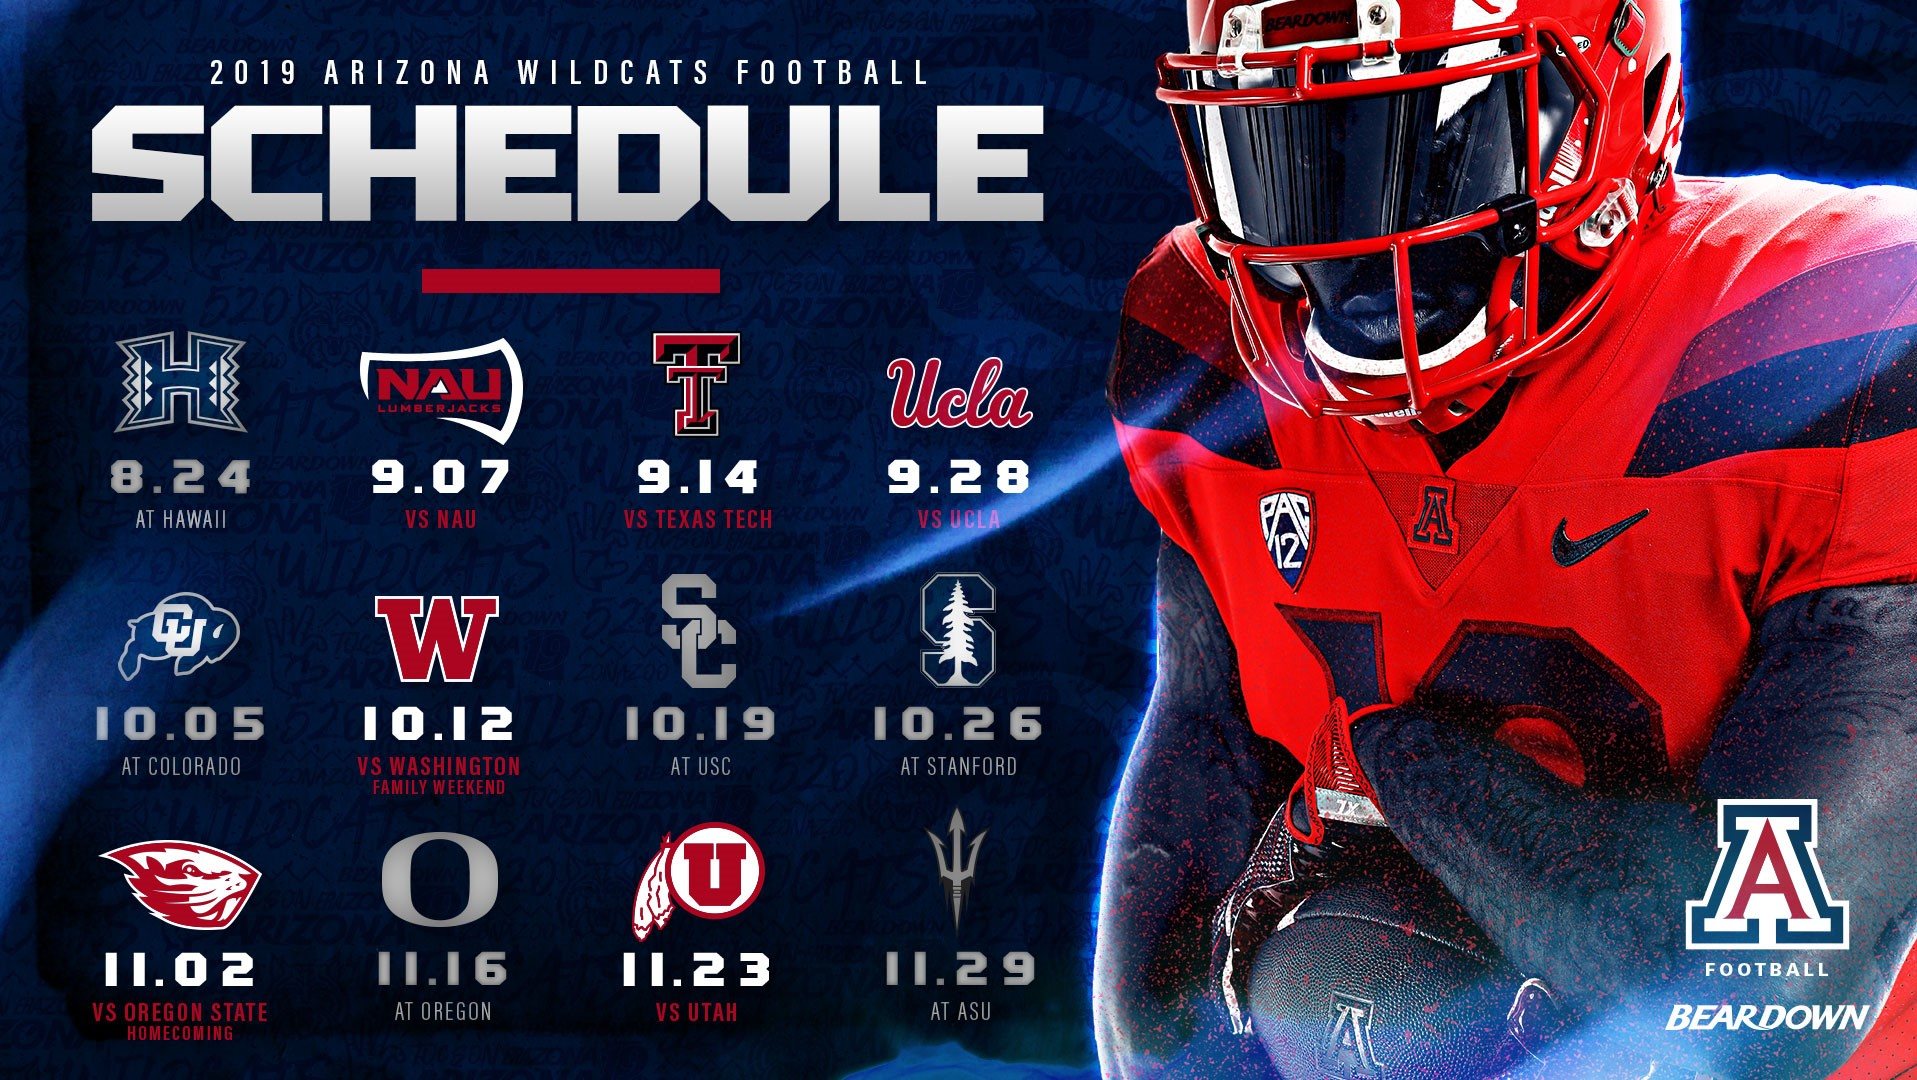 Uofa Calendar 2020 2019 Arizona Football Schedule Announced   University of Arizona